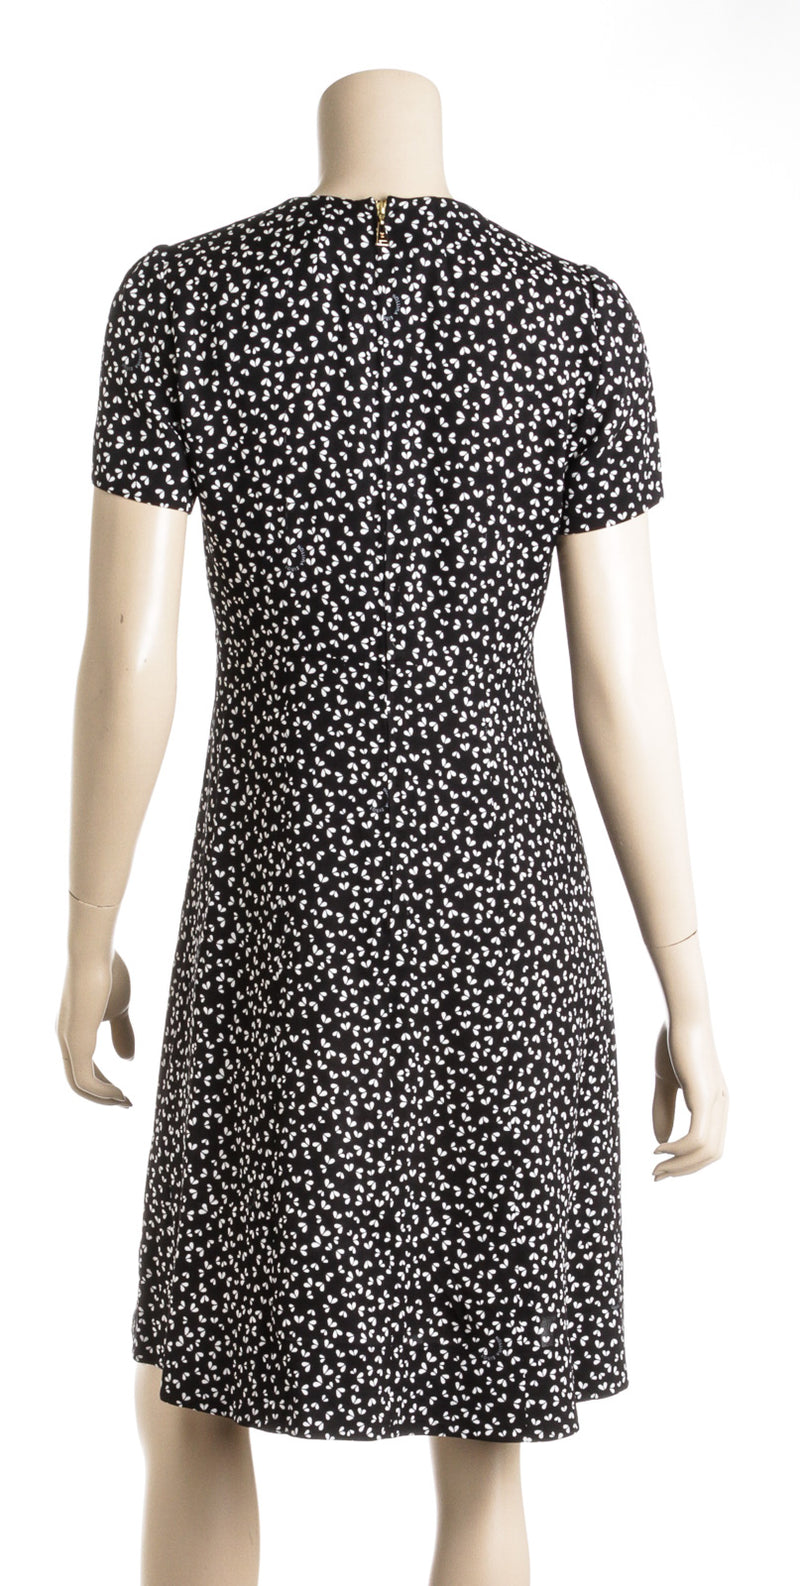 Louis Vuitton Black and White Print Silk Dress (Size 38)